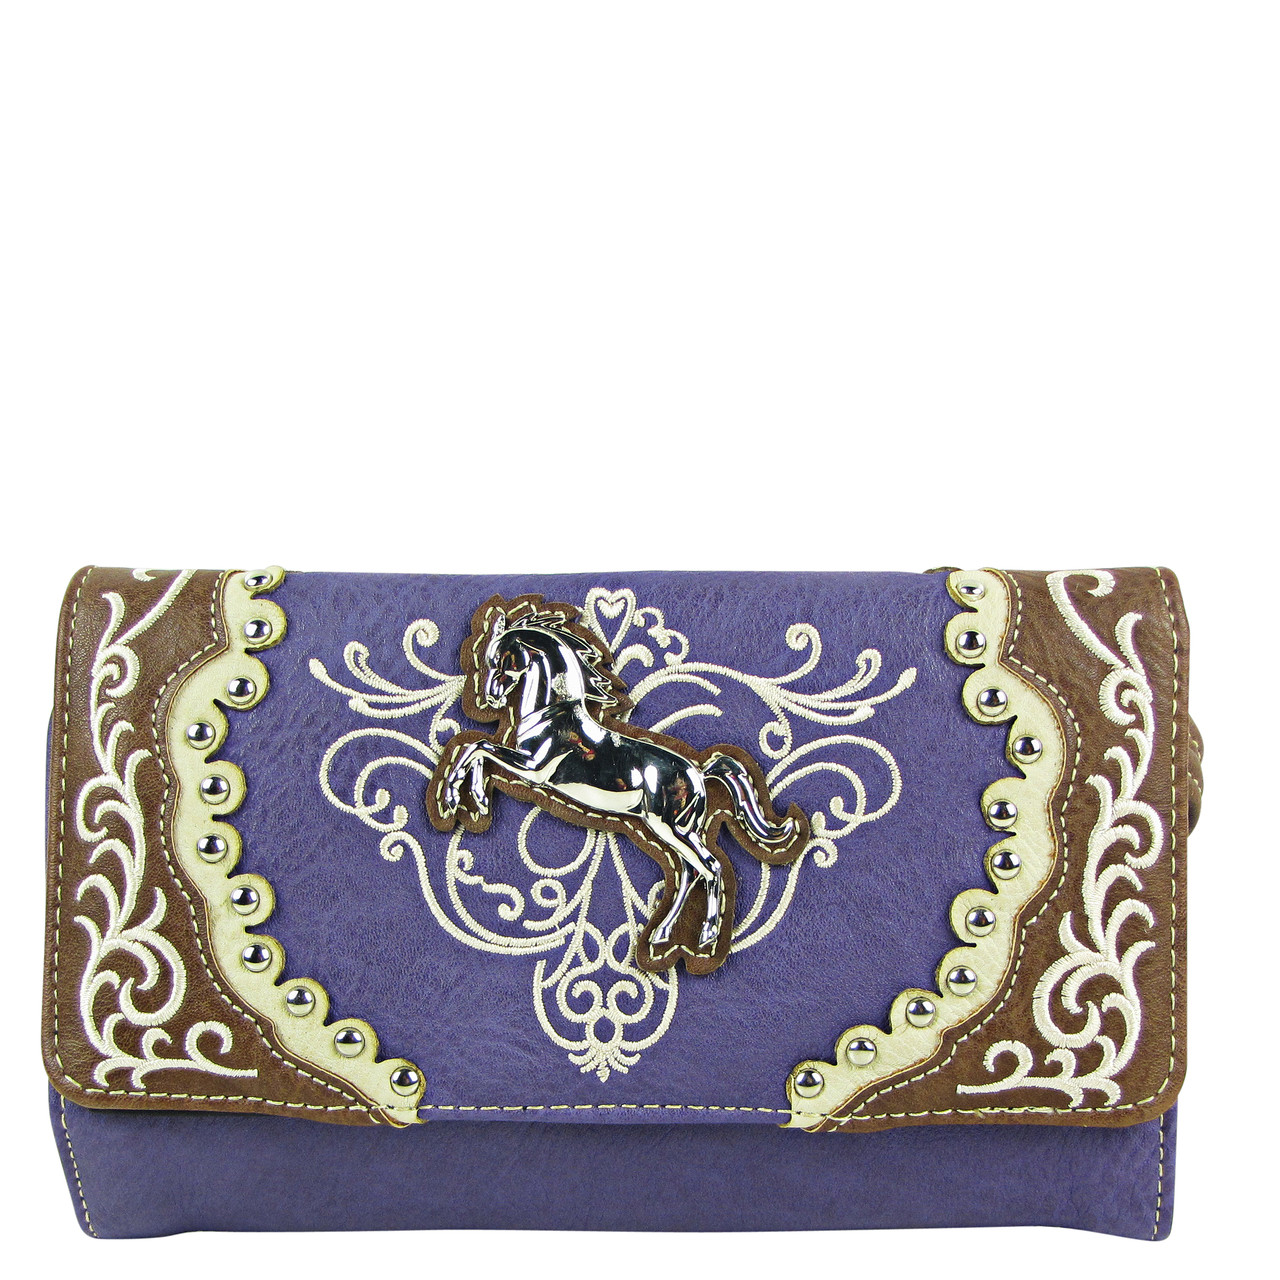 PURPLE WESTERN STITCH METAL HORSE LOOK CLUTCH TRIFOLD WALLET PURPLE WESTERN STITCH METAL HORSE LOOK CLUTCH TRIFOLD WALLET CW1-1289PPL